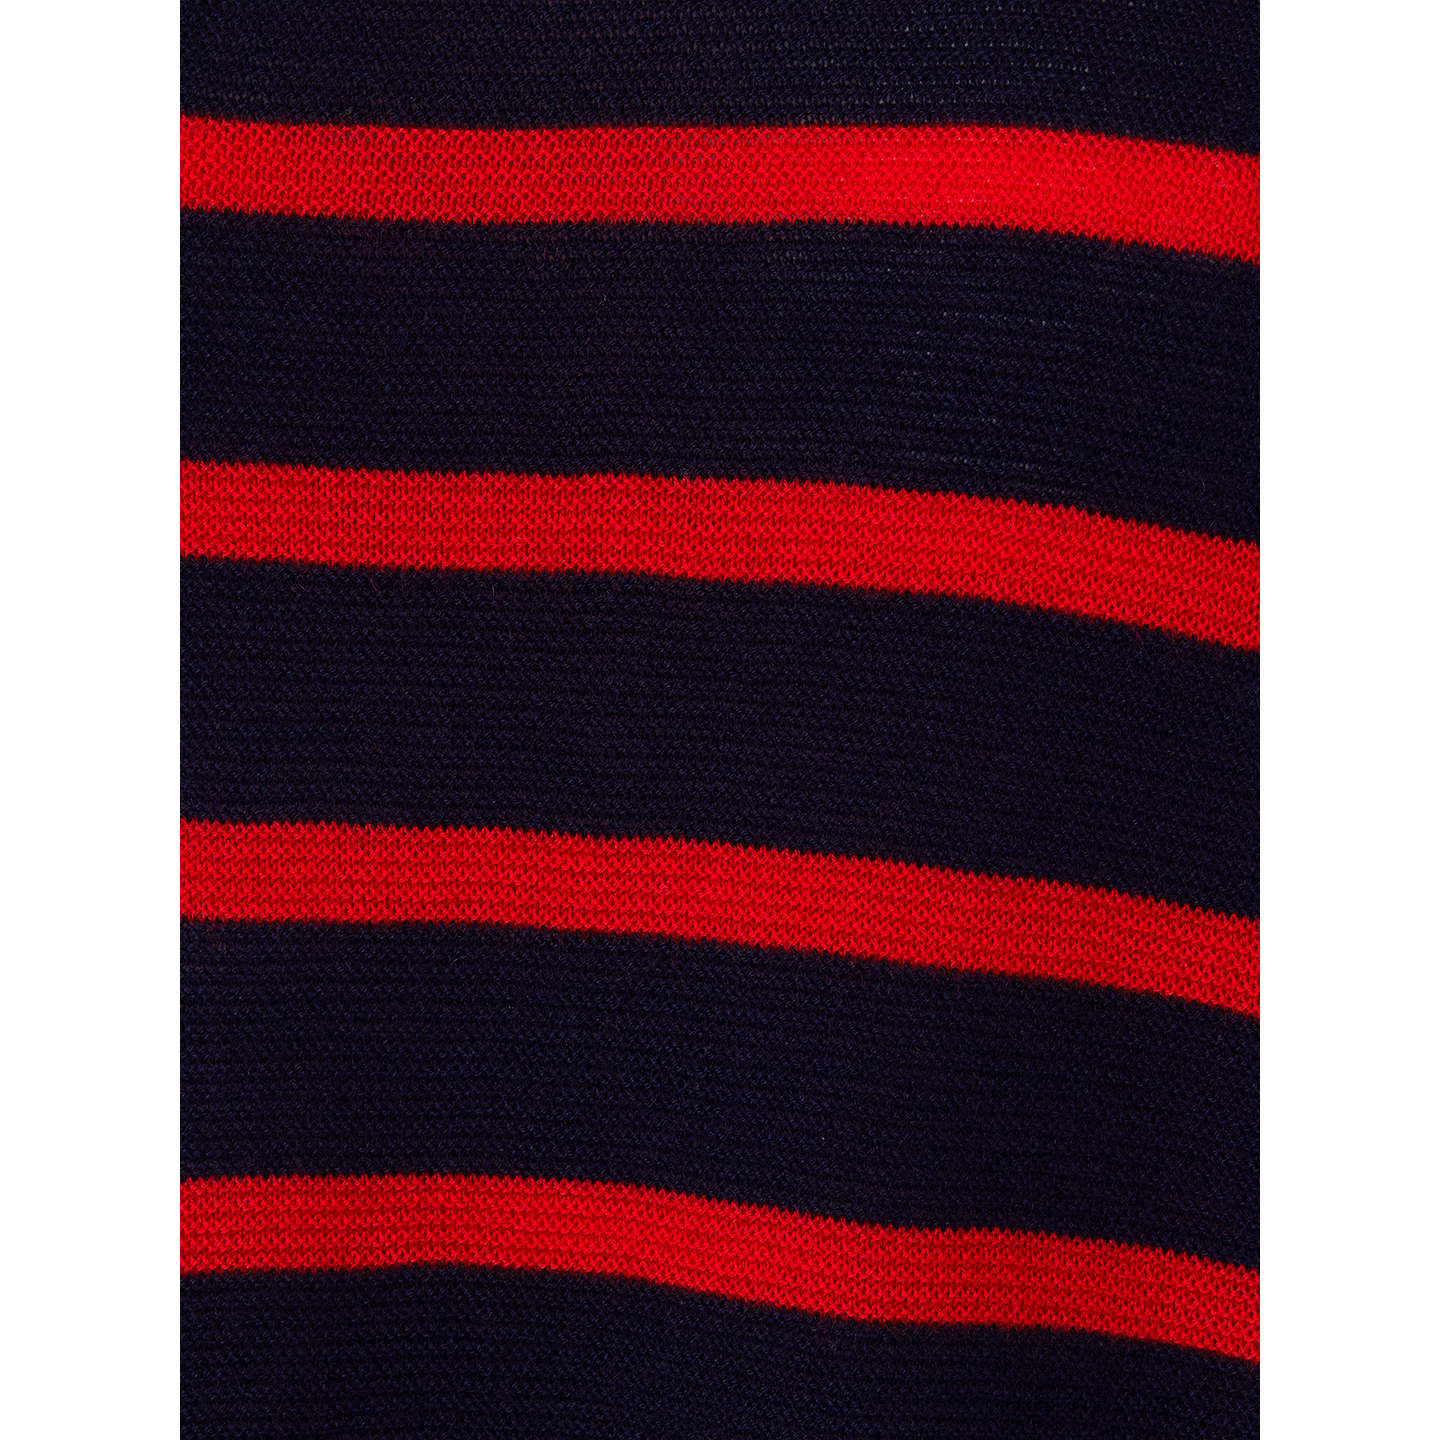 BuyPhase Eight Breton Stripe Megg Jumper, Navy/Red, XS Online at johnlewis.com